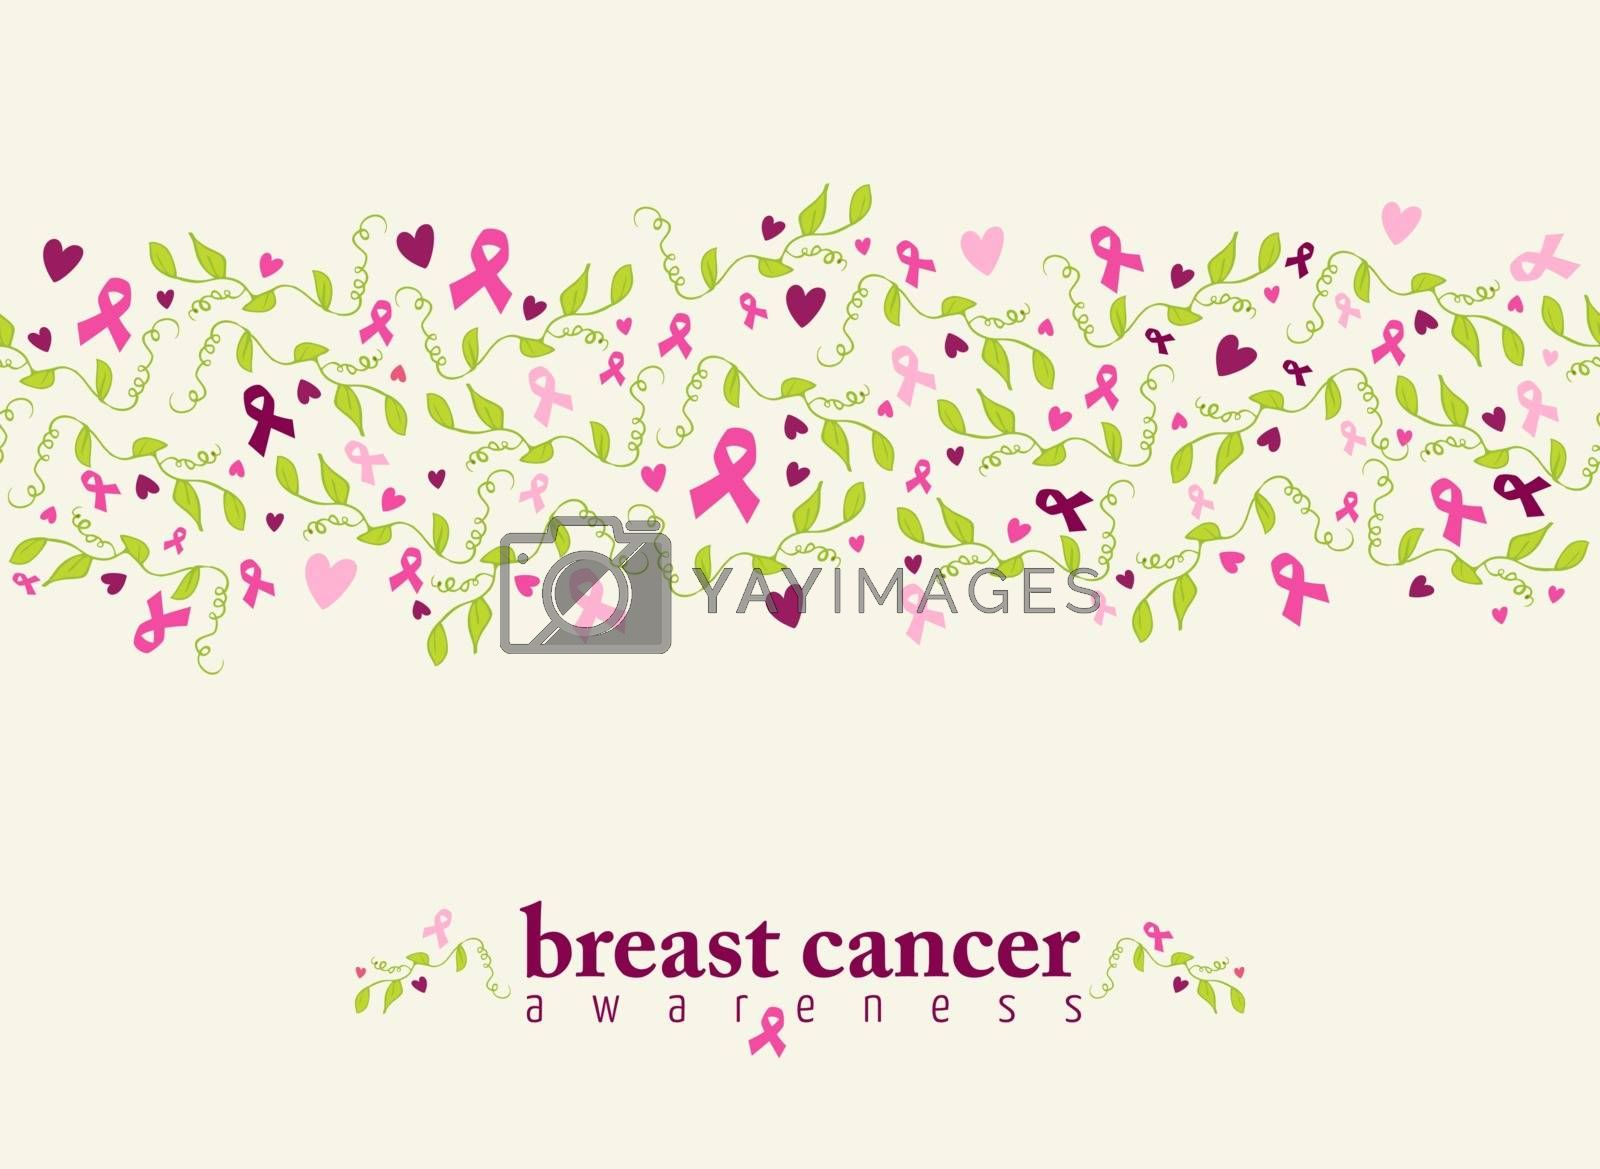 Breast cancer awareness seamless pattern with pink ribbon, heart shape and spring nature elements. EPS10 vector file.